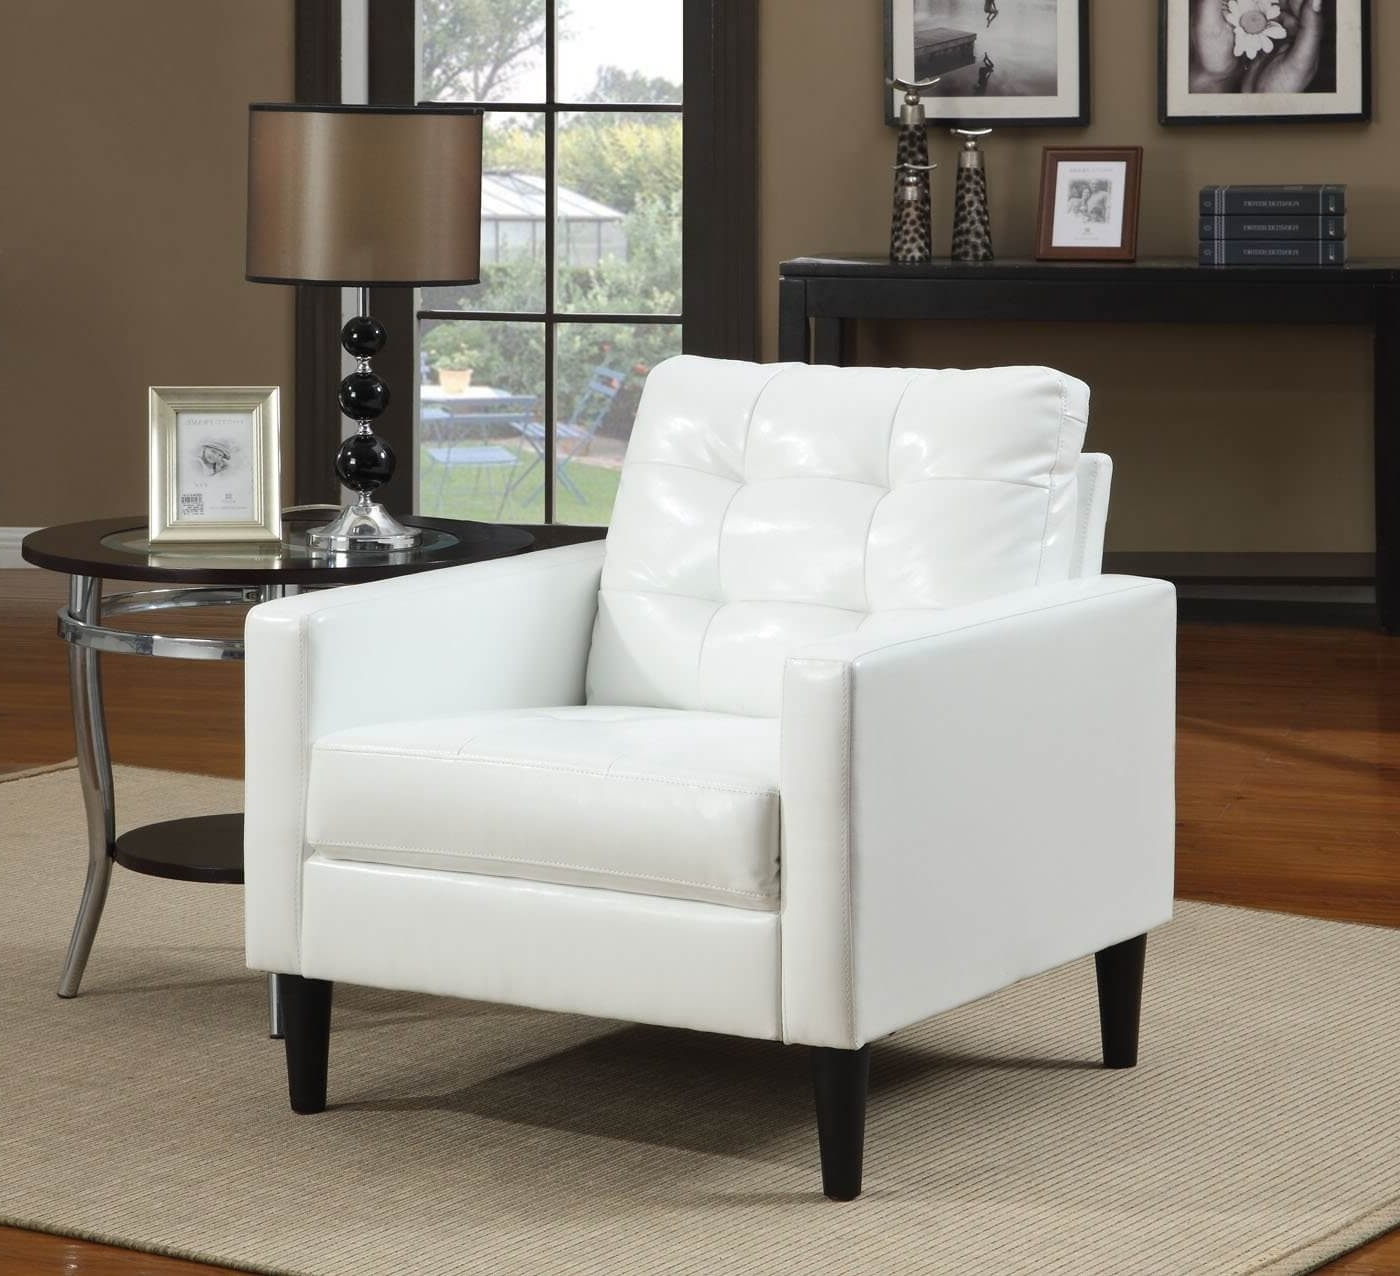 Well Known Accent Sofa Chairs Pertaining To 37 White Modern Accent Chairs For The Living Room (View 12 of 15)